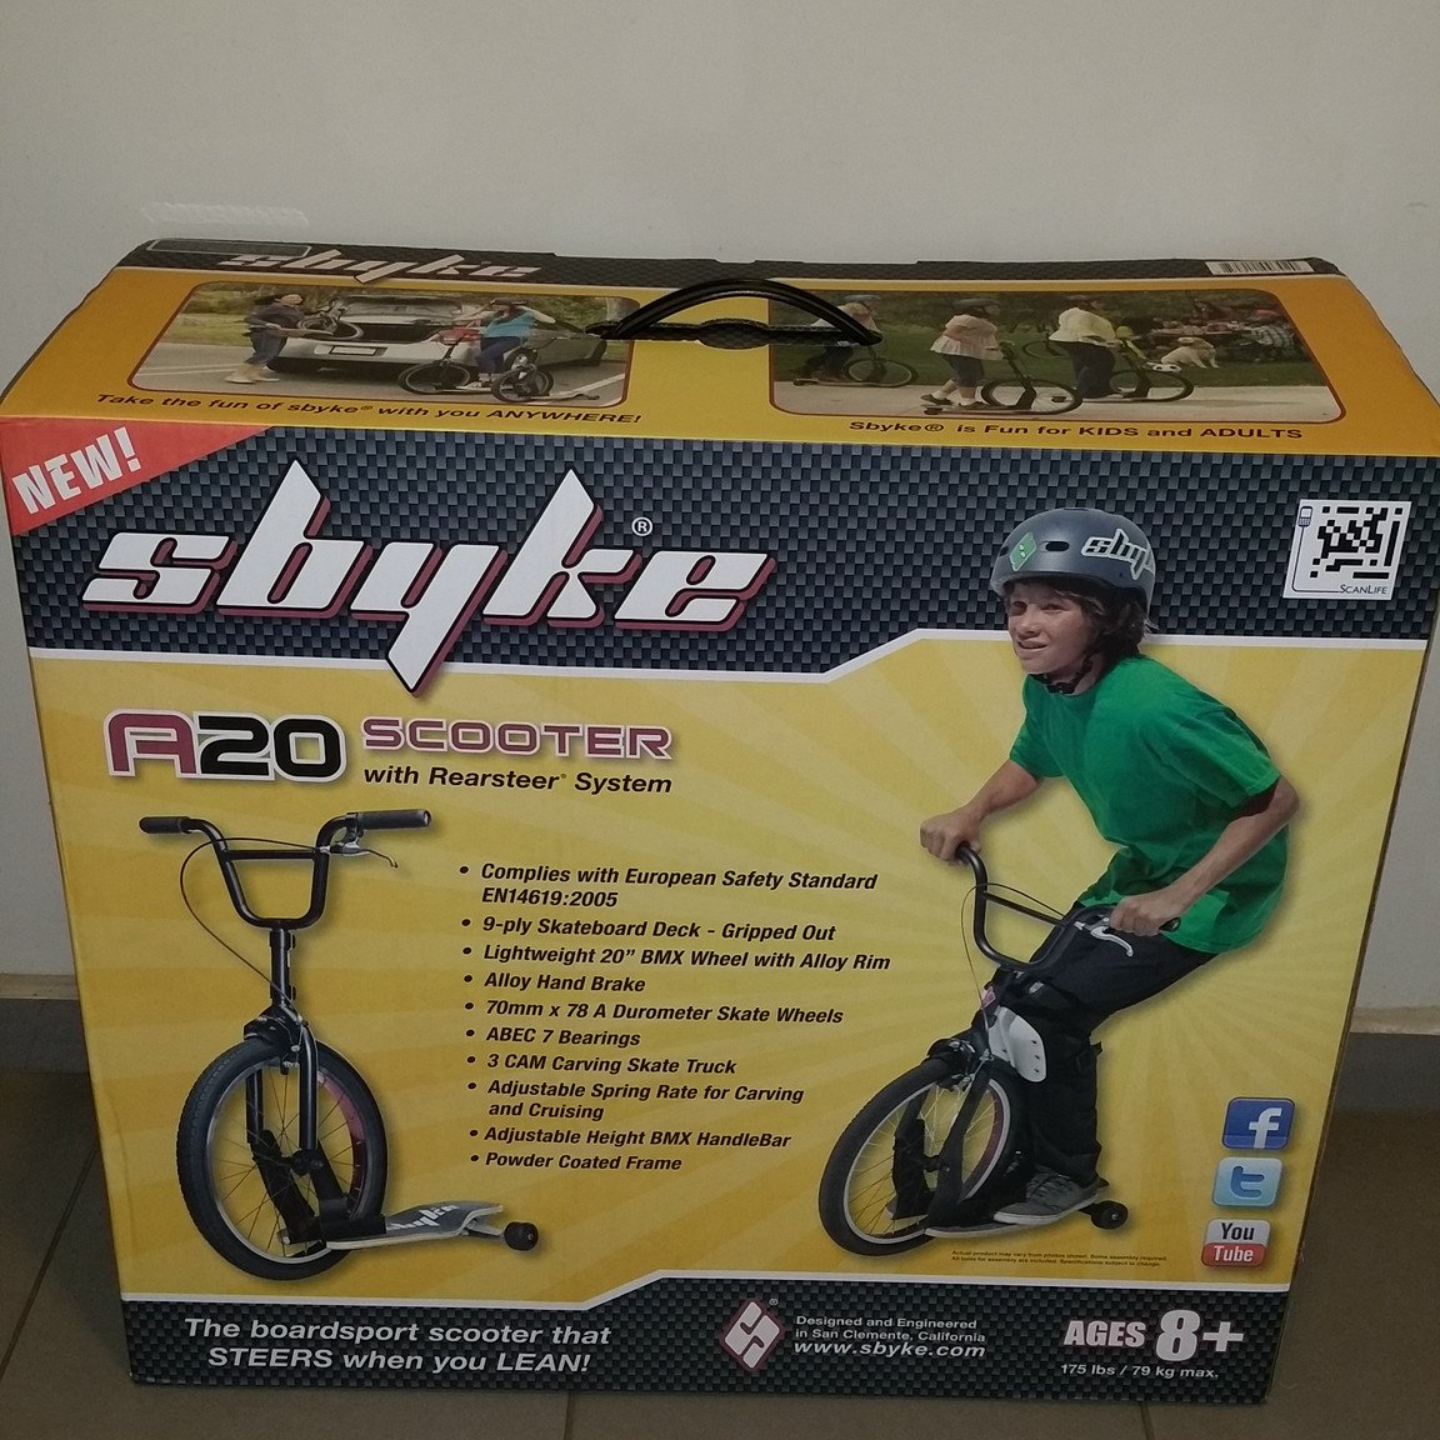 Sbyke kick scooter model A20 7 years old onwards